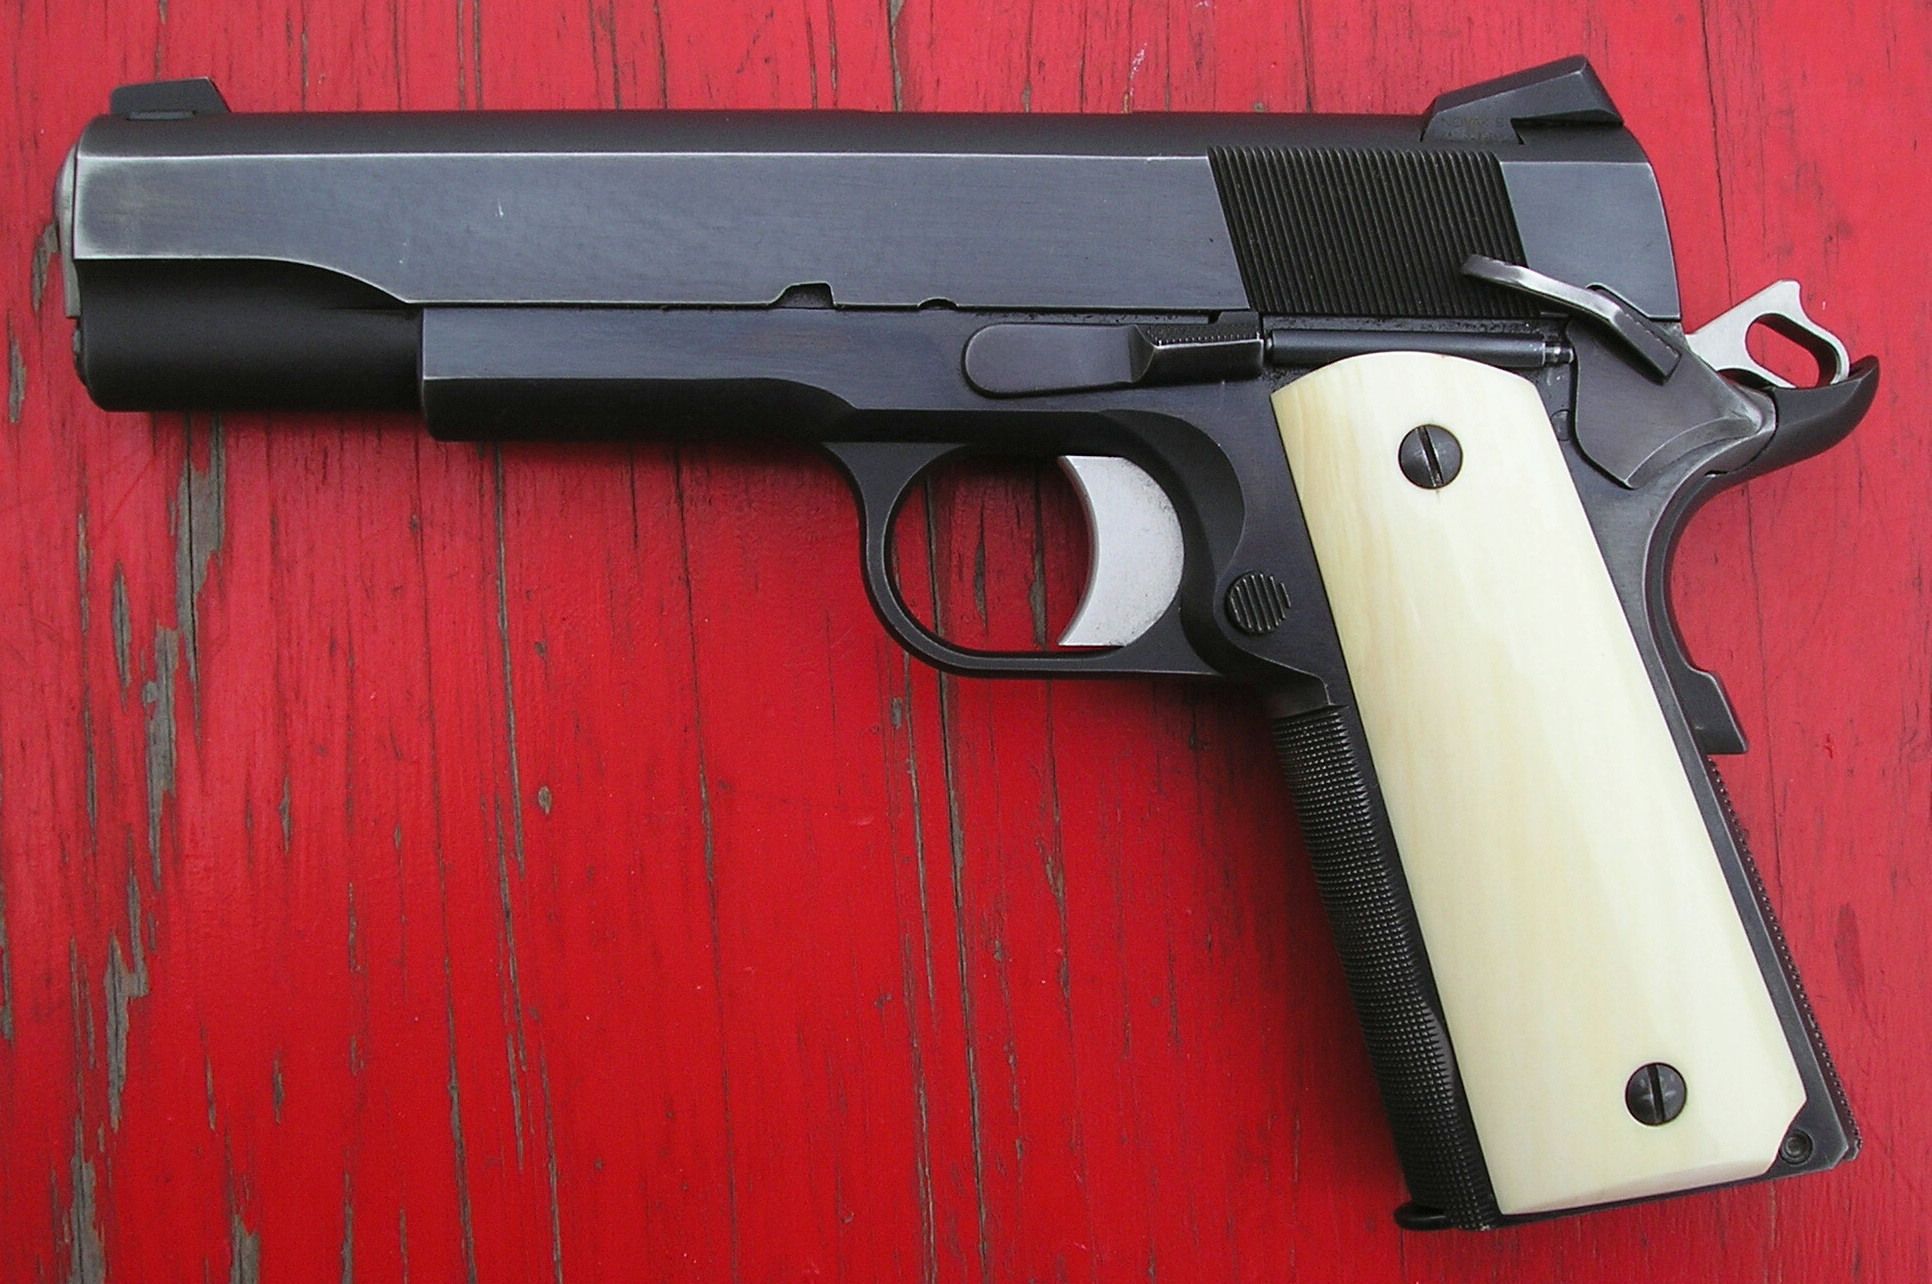 """The """"addiction"""" is STILL STRONG with this one! OK, """"Cough up"""" your 1911s !!-lb2370-1.jpg"""